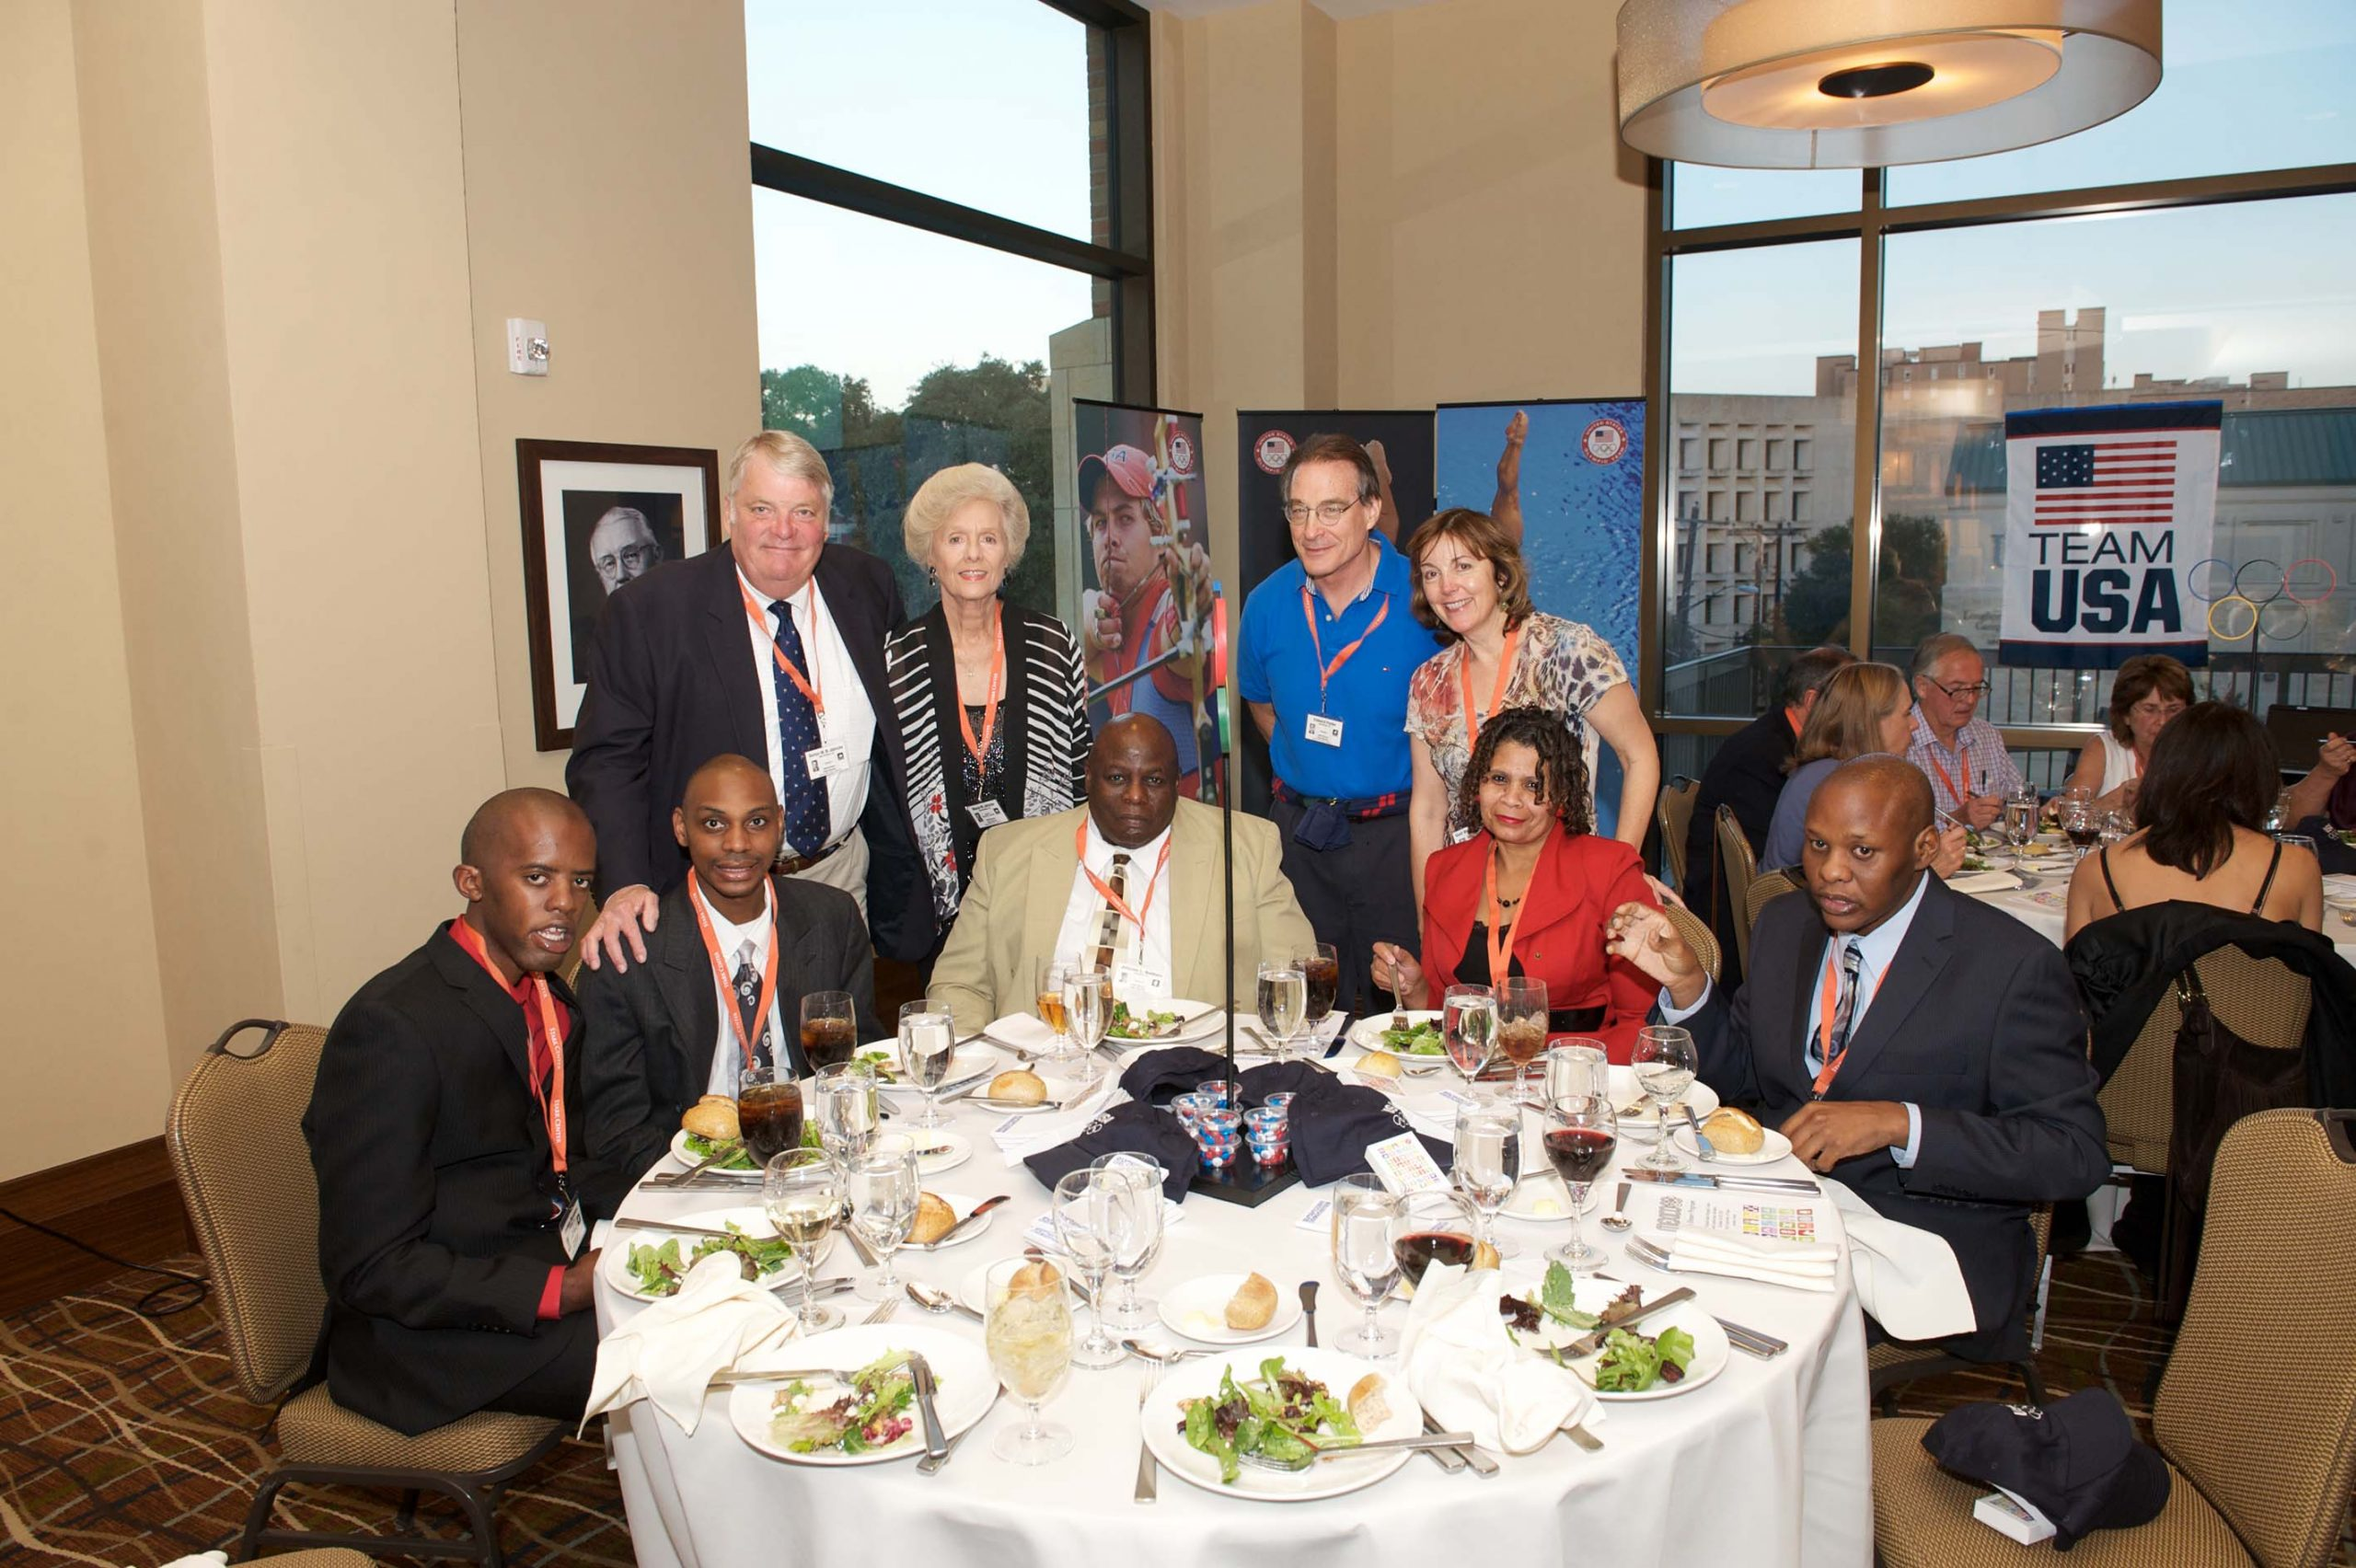 Fifteen people at two tables at the 1968 U.S. Olympic Team 2012 Reunion.